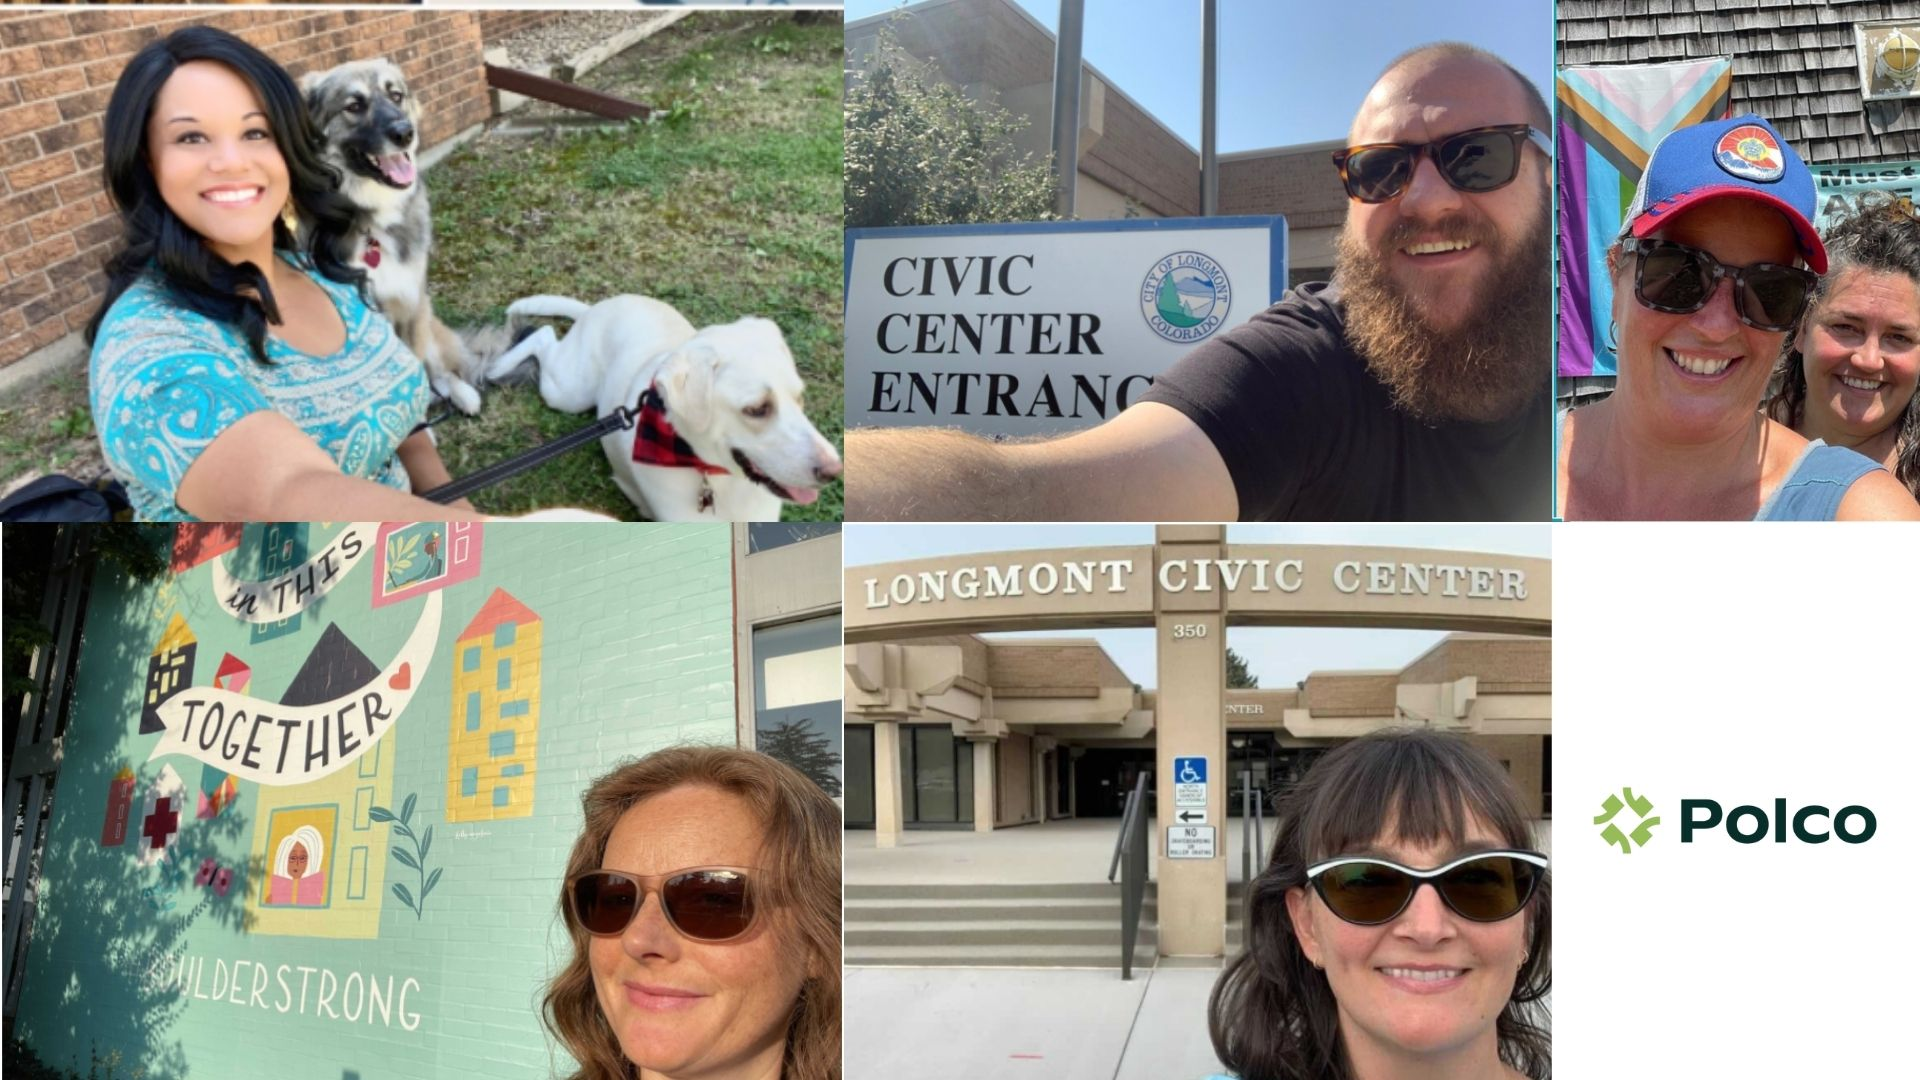 5 Reasons To Celebrate Local Government This Year